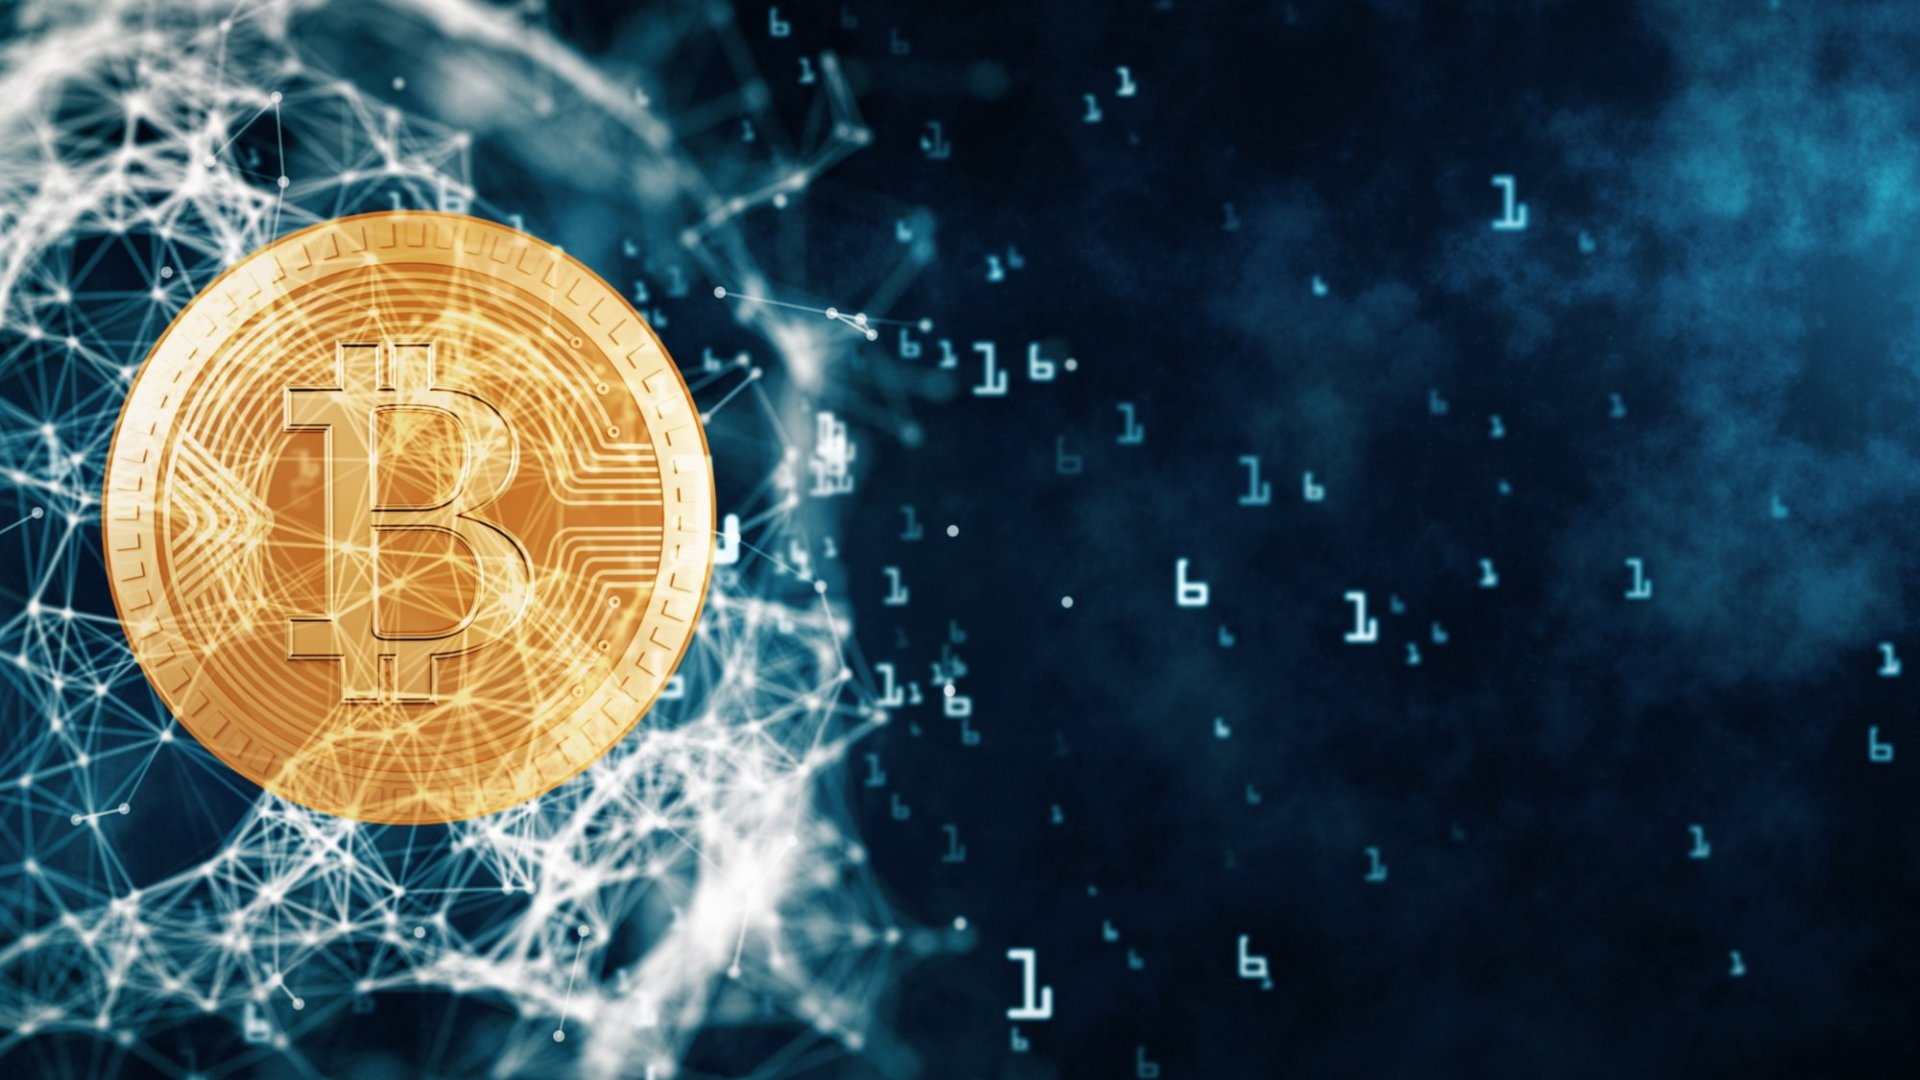 Why the Bitcoin Bubble is Bursting, but Cryptocurrency's Future is Still Bright